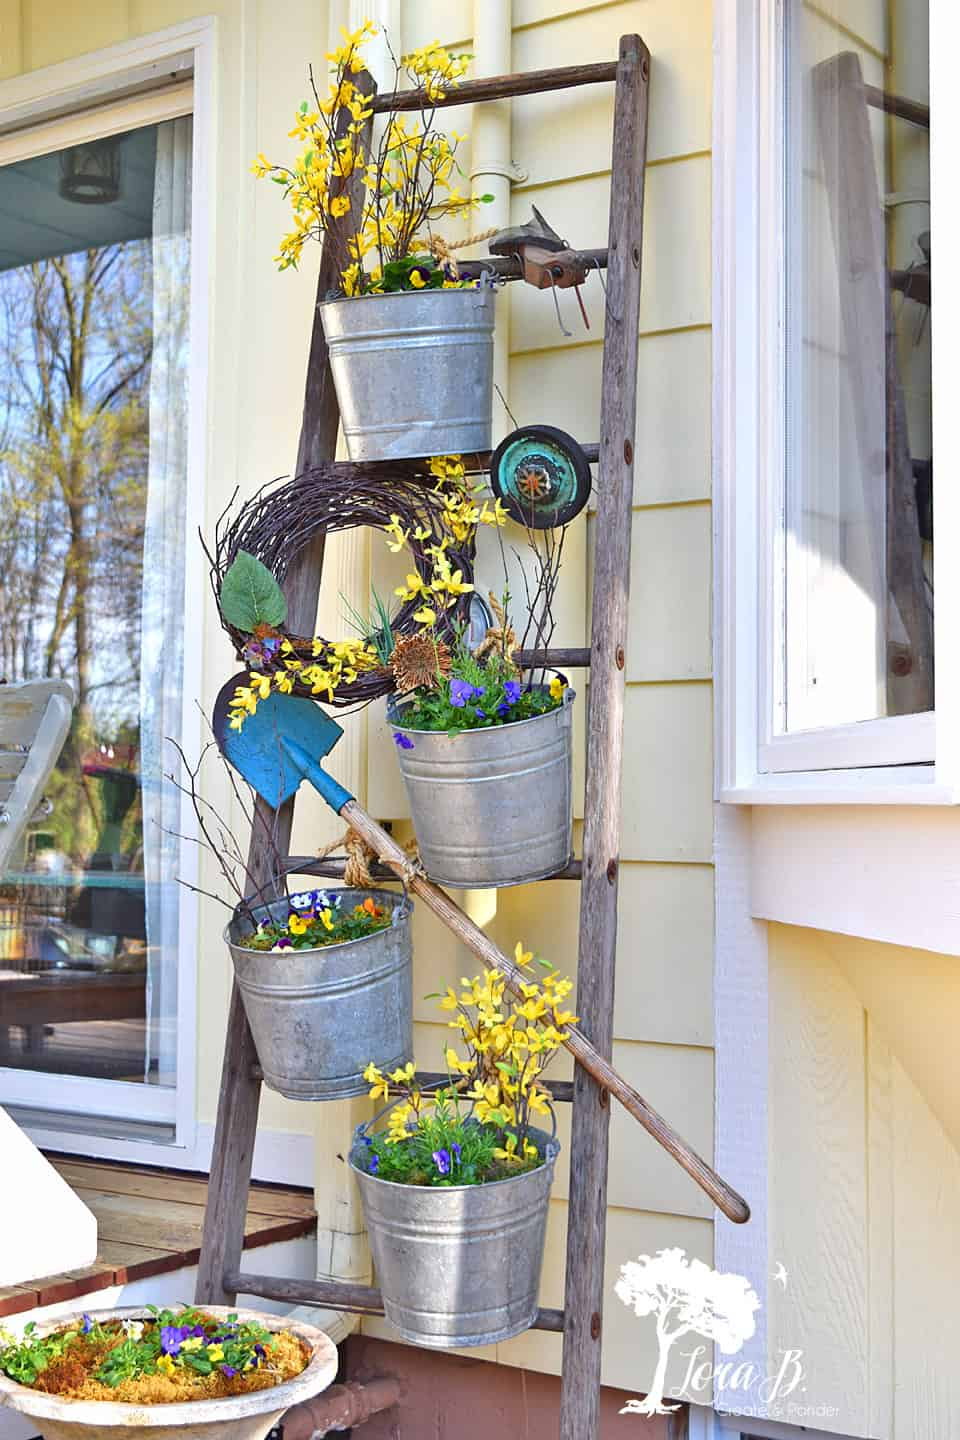 Wooden ladder plant stand by Lora B, featured on DIY Salvaged Junk Projects 526 on Funky Junk!